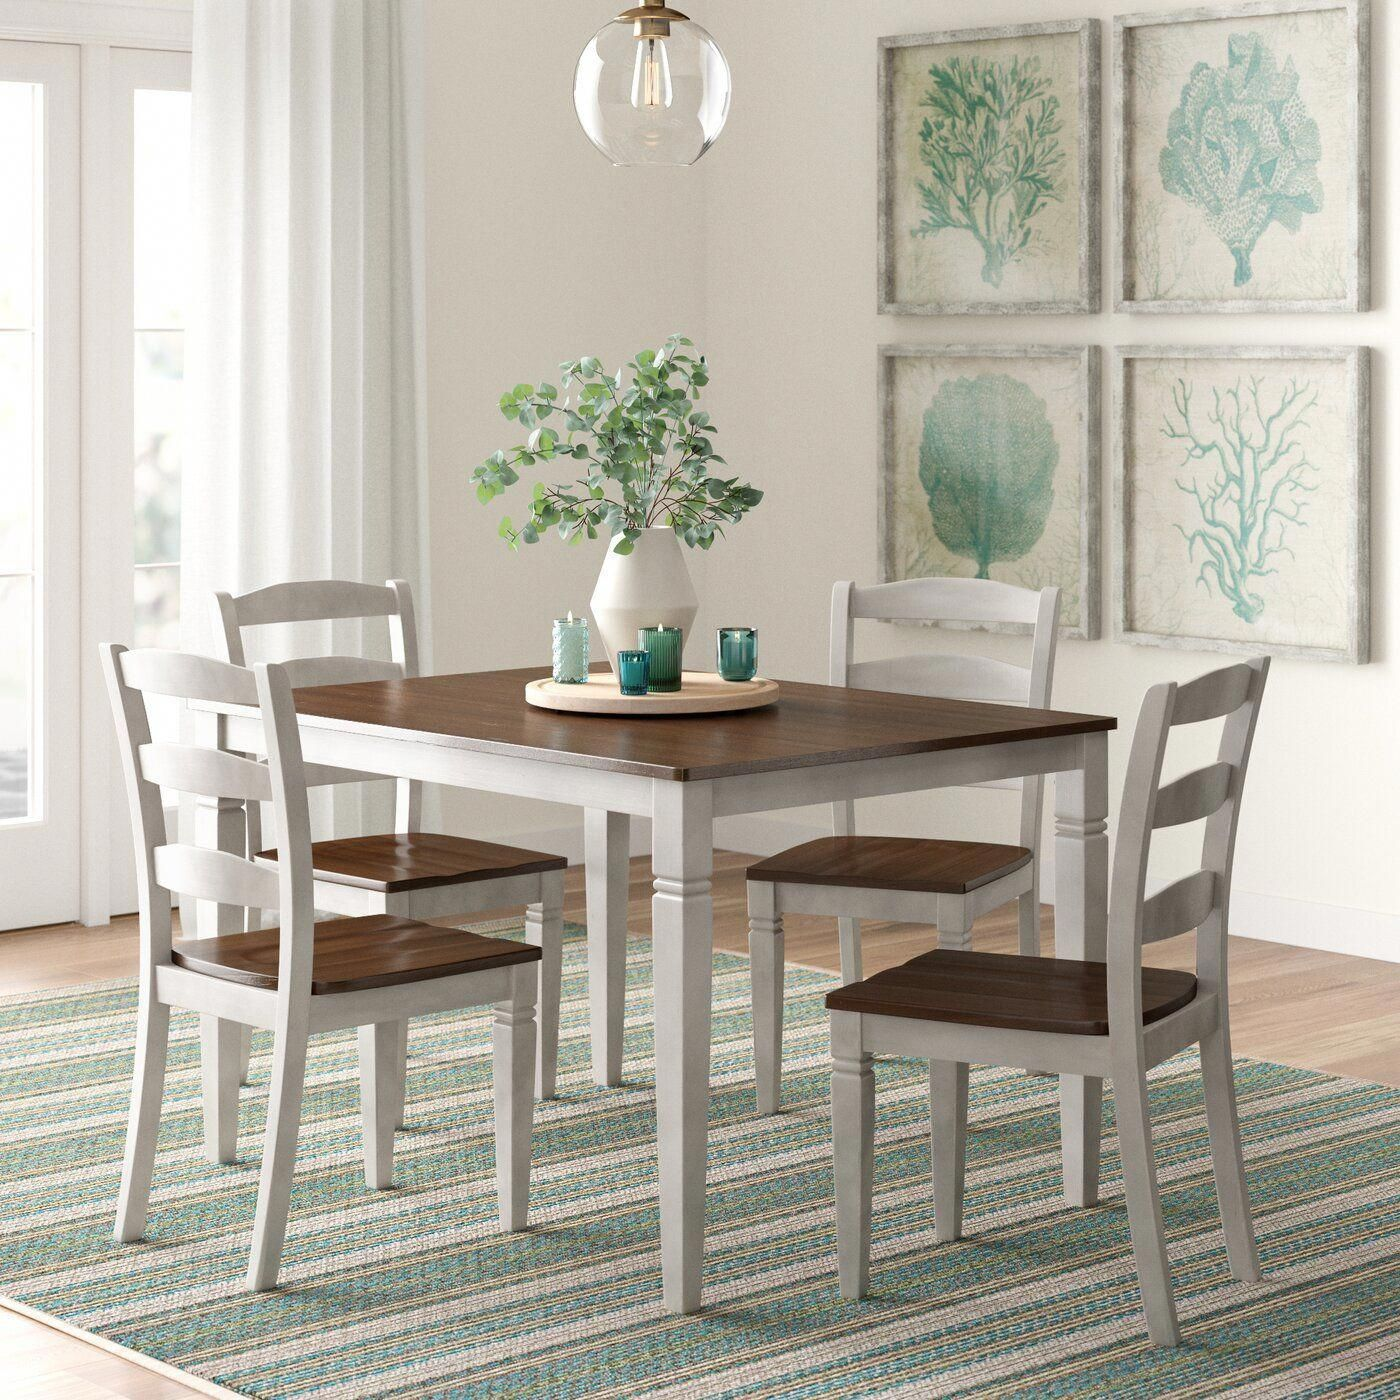 Ayleen 5 Piece Dining Set Small Dining Room Set Dining Room Small Dining Room Sets